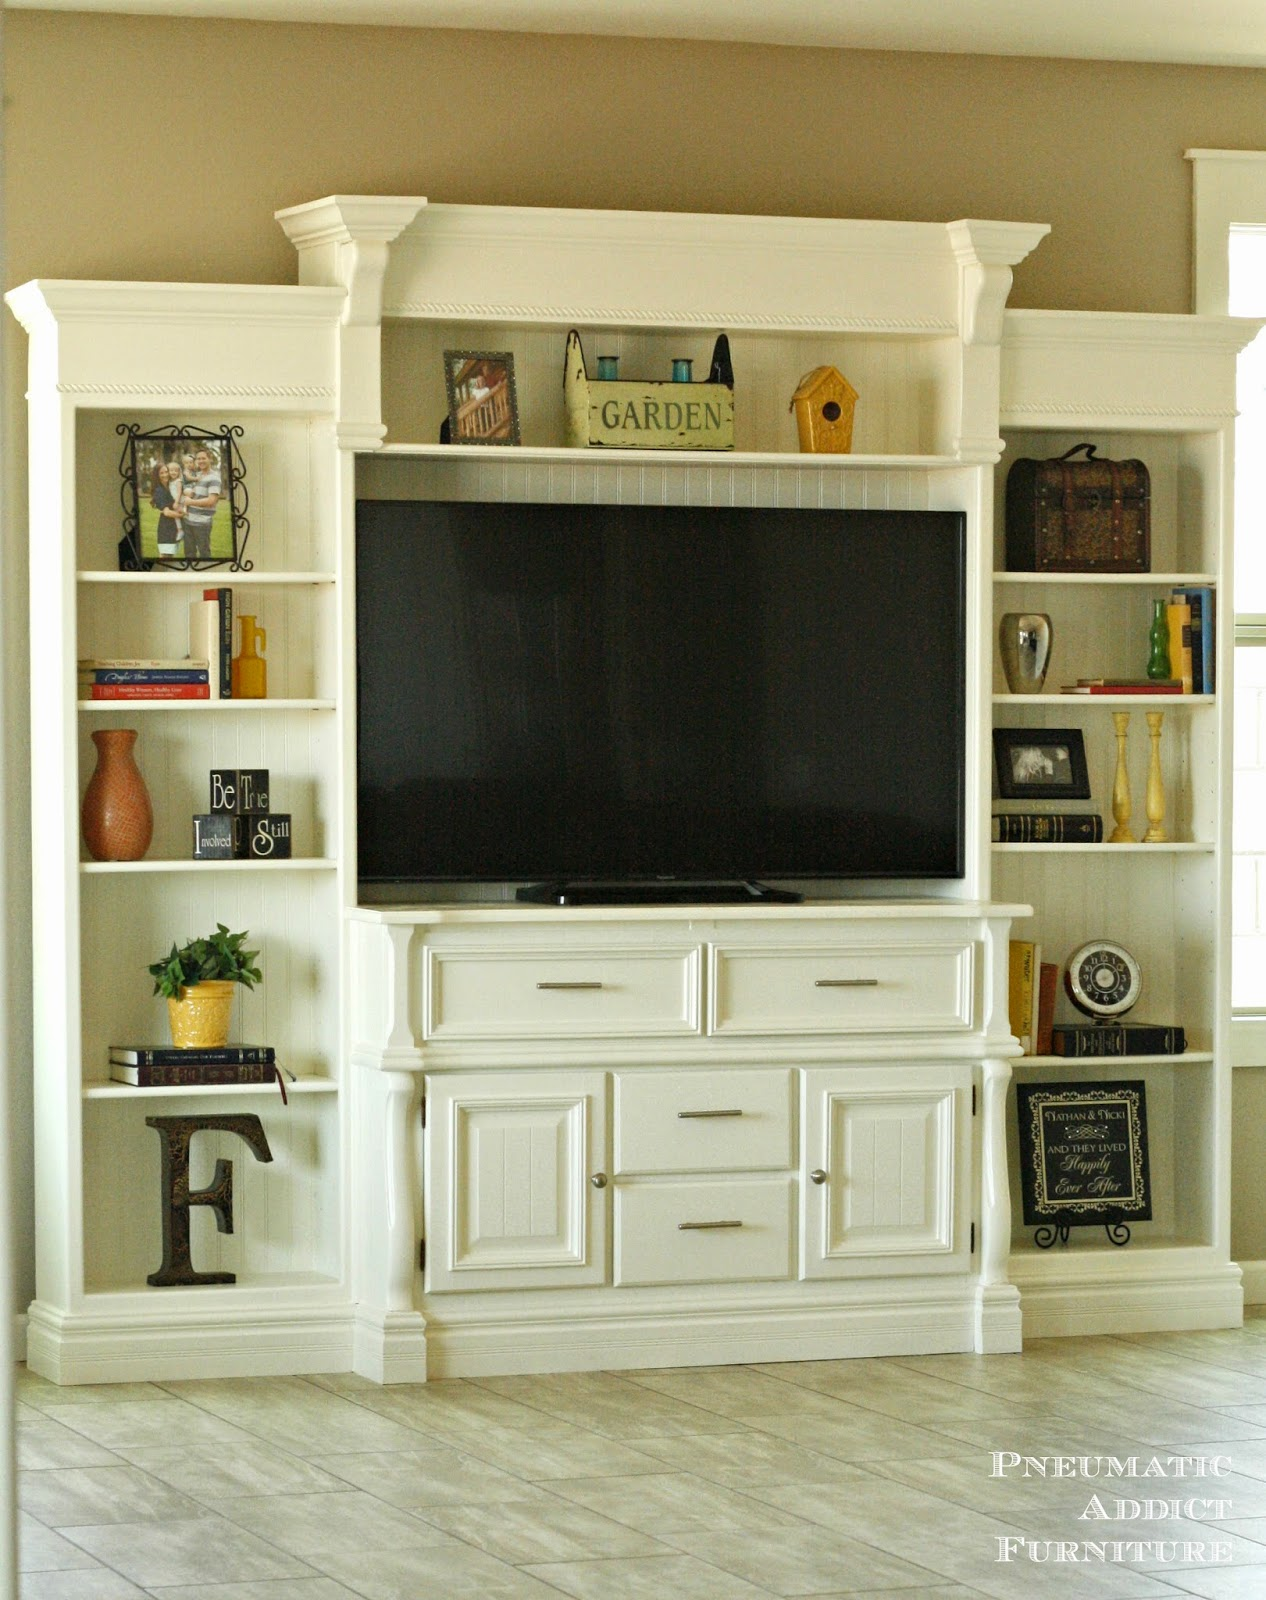 Pneumatic Addict Diy Entertainment Center